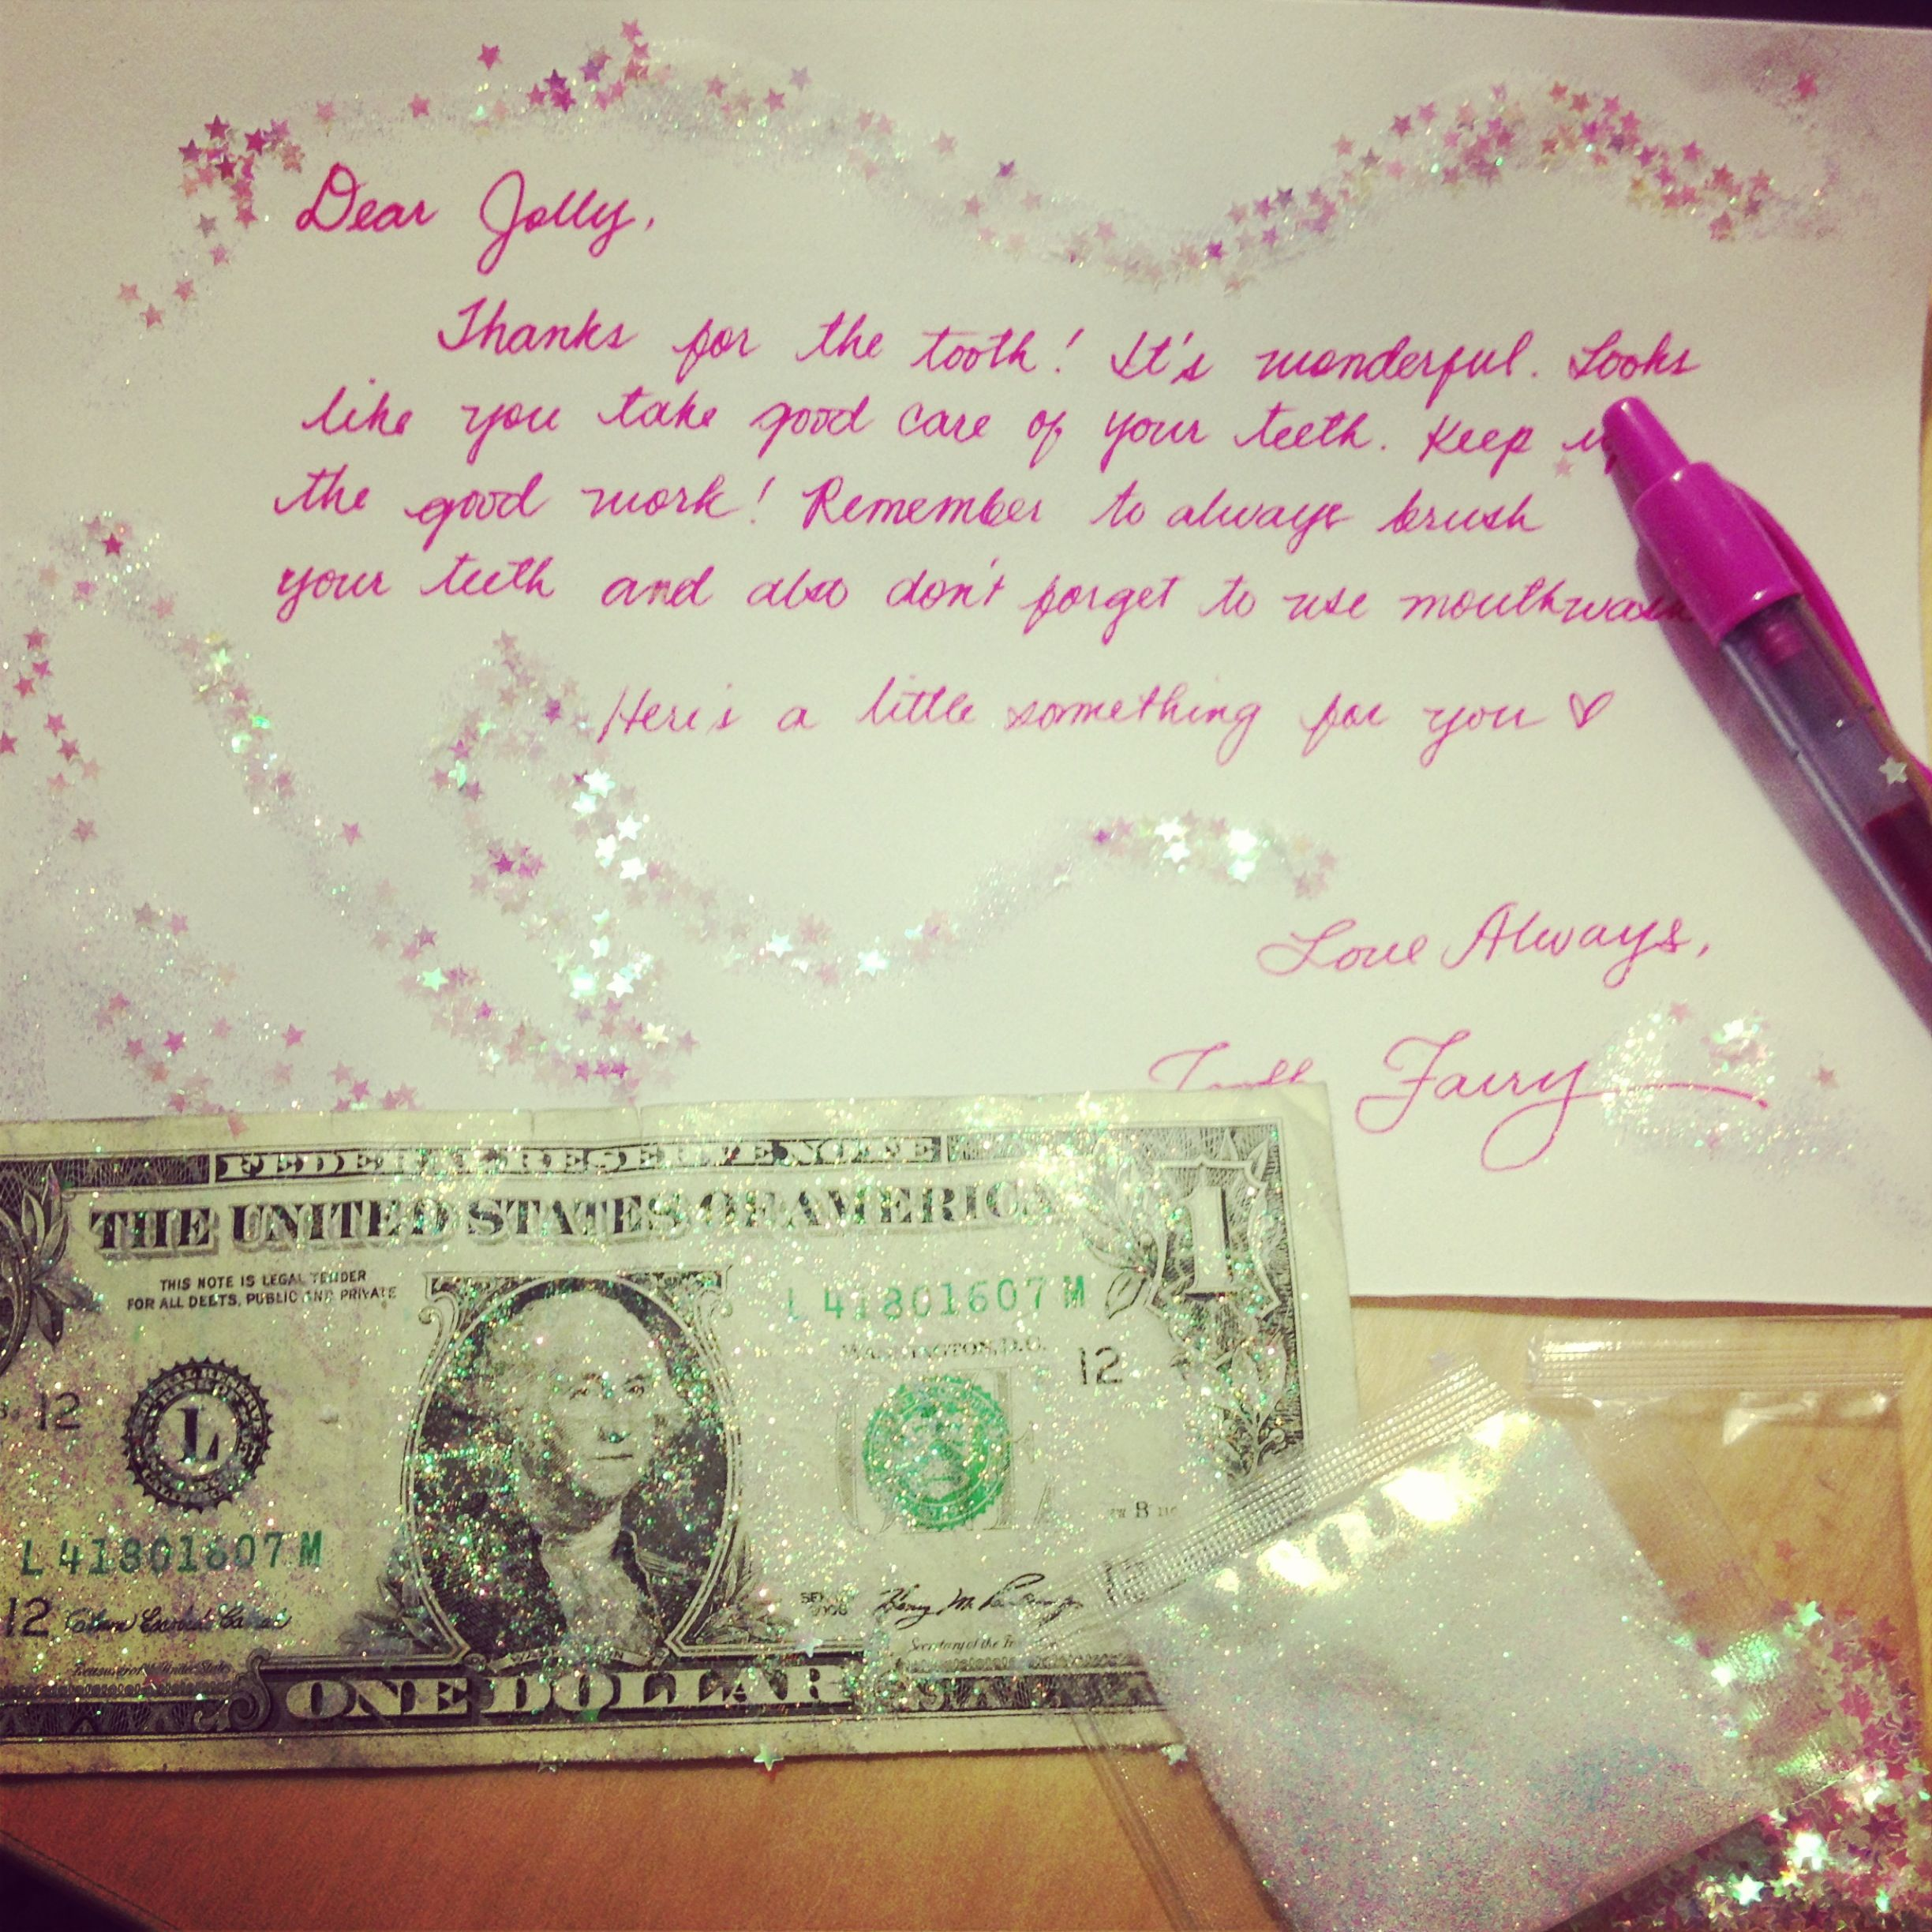 Tooth fairy note and glitters